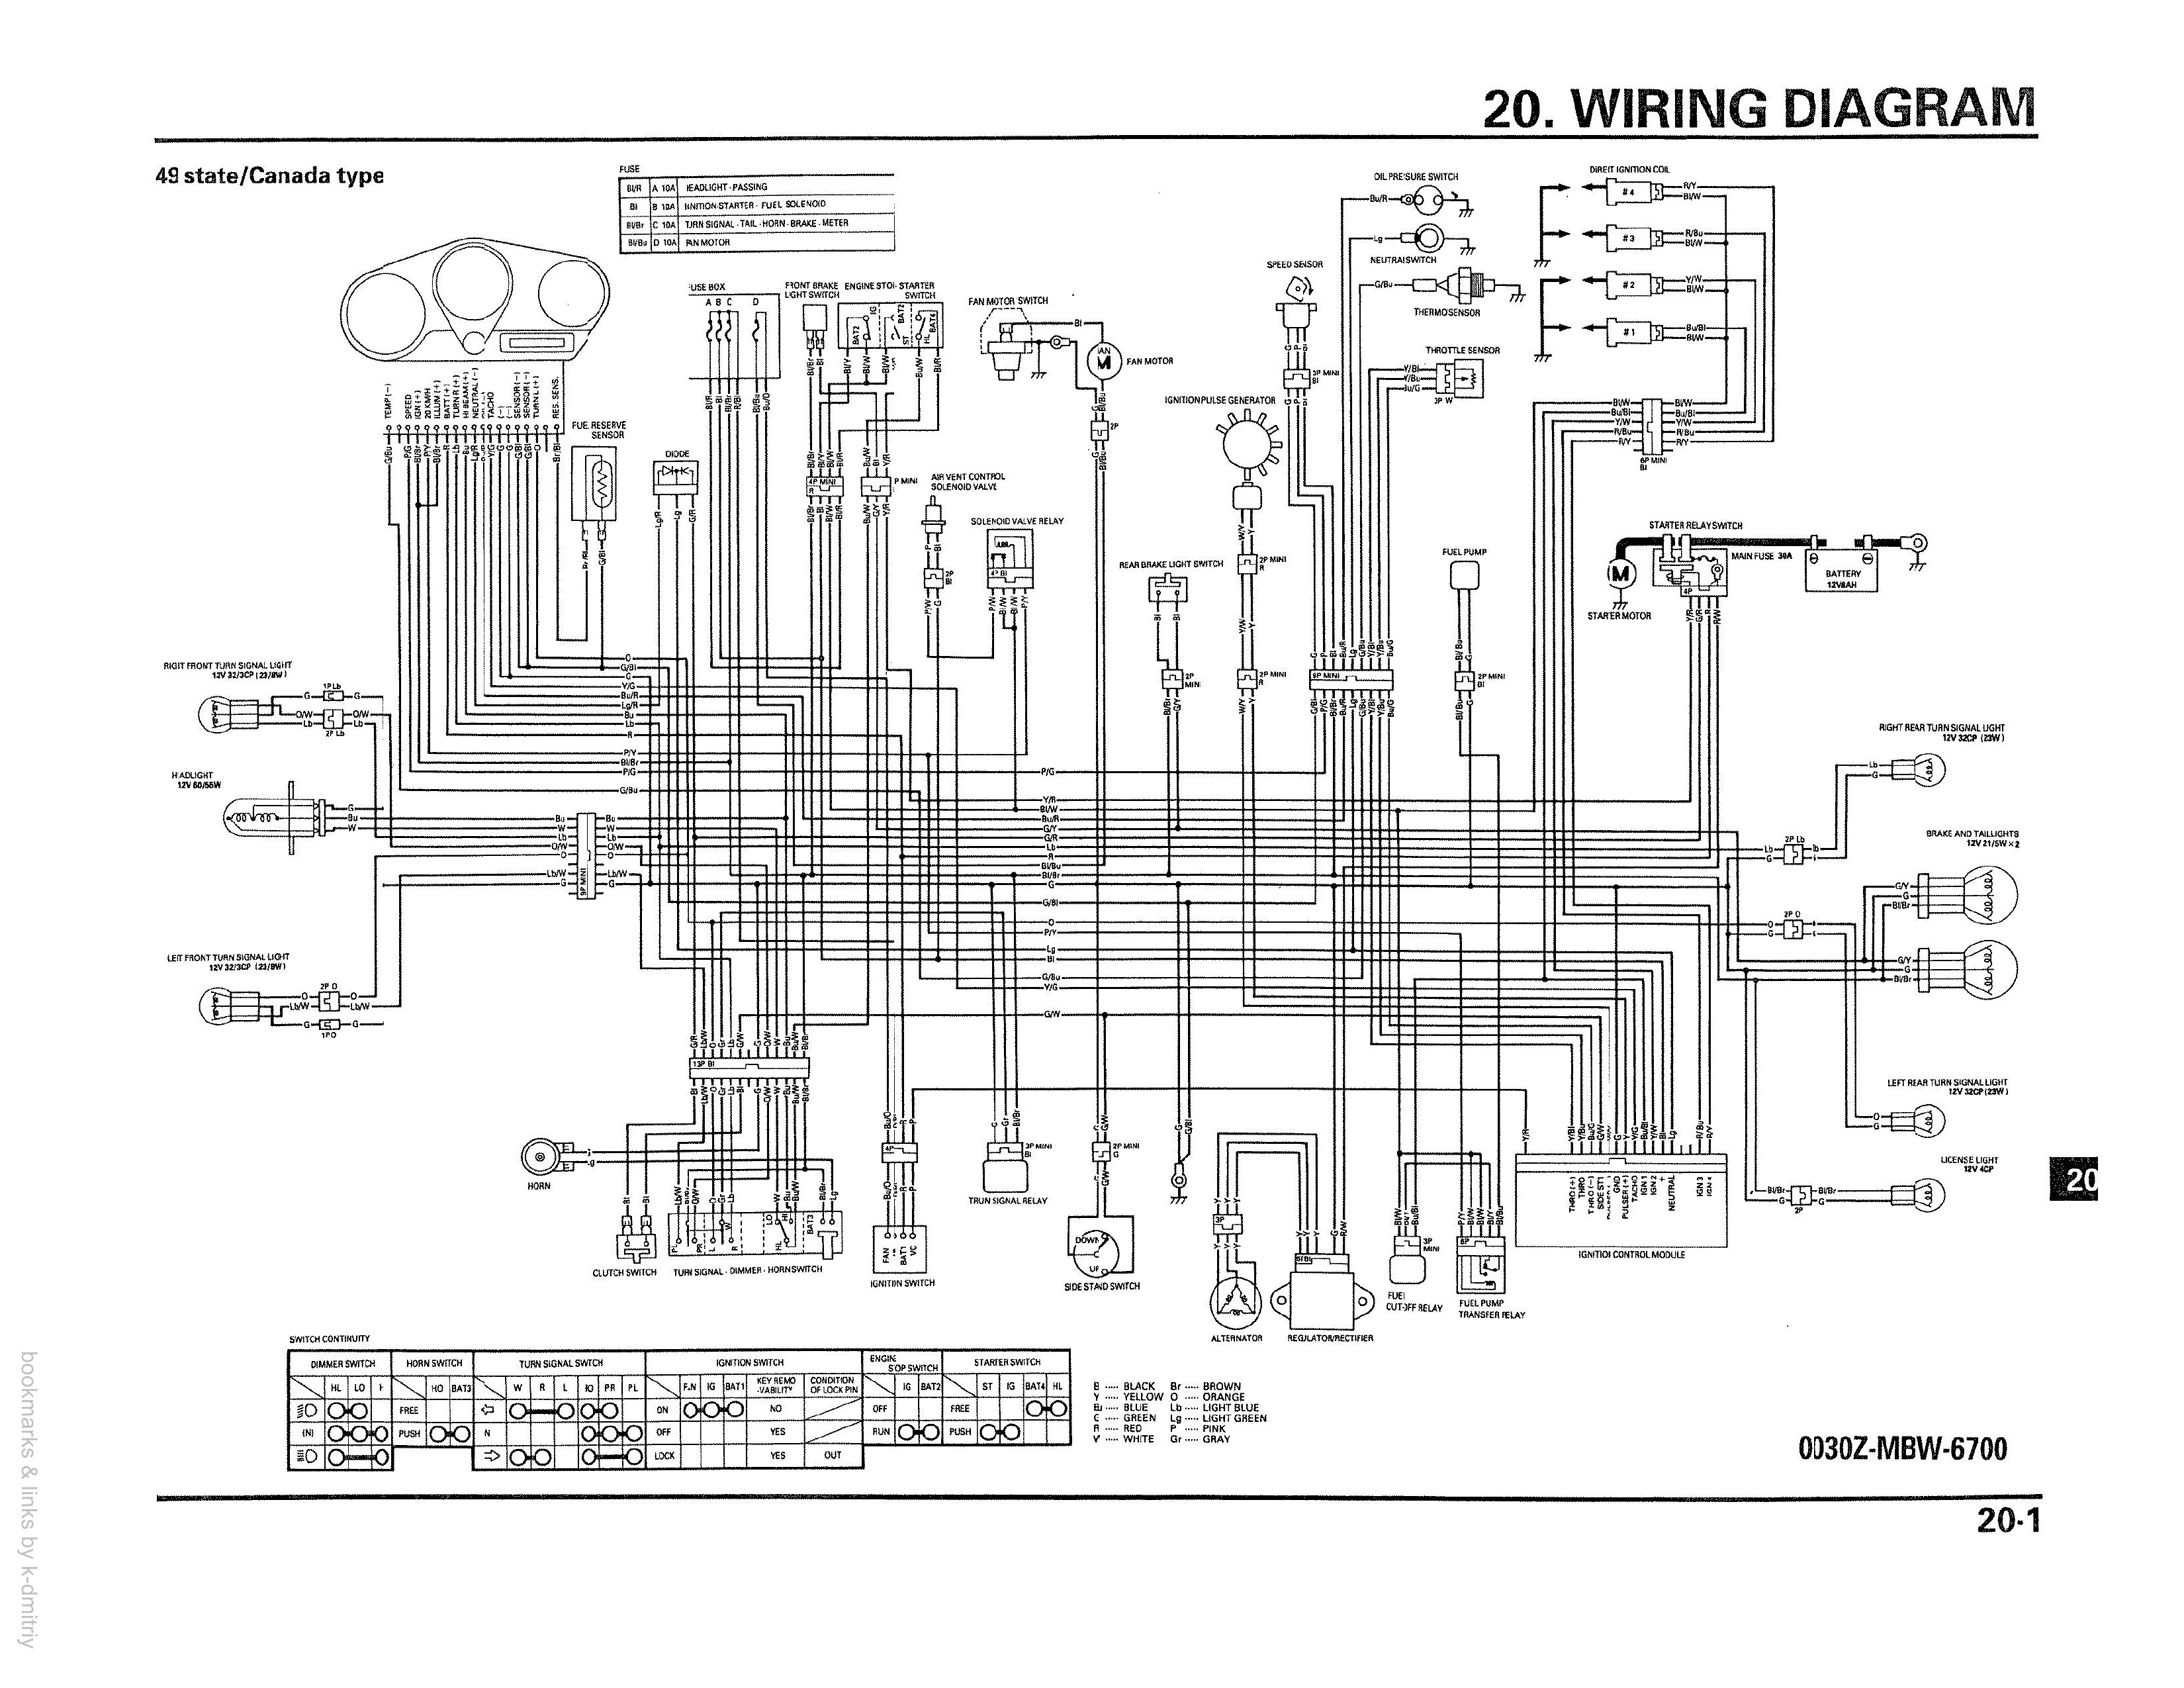 Polaris Sportsman 500 Ho Wiring Diagram together with Tl1000r Wiring Diagram further 1998 Ski Doo Wiring Diagram Online in addition Best Electrical Wiring Diagram Software moreover Cat Vr6 Wiring Diagram. on arctic cat wiring diagrams online